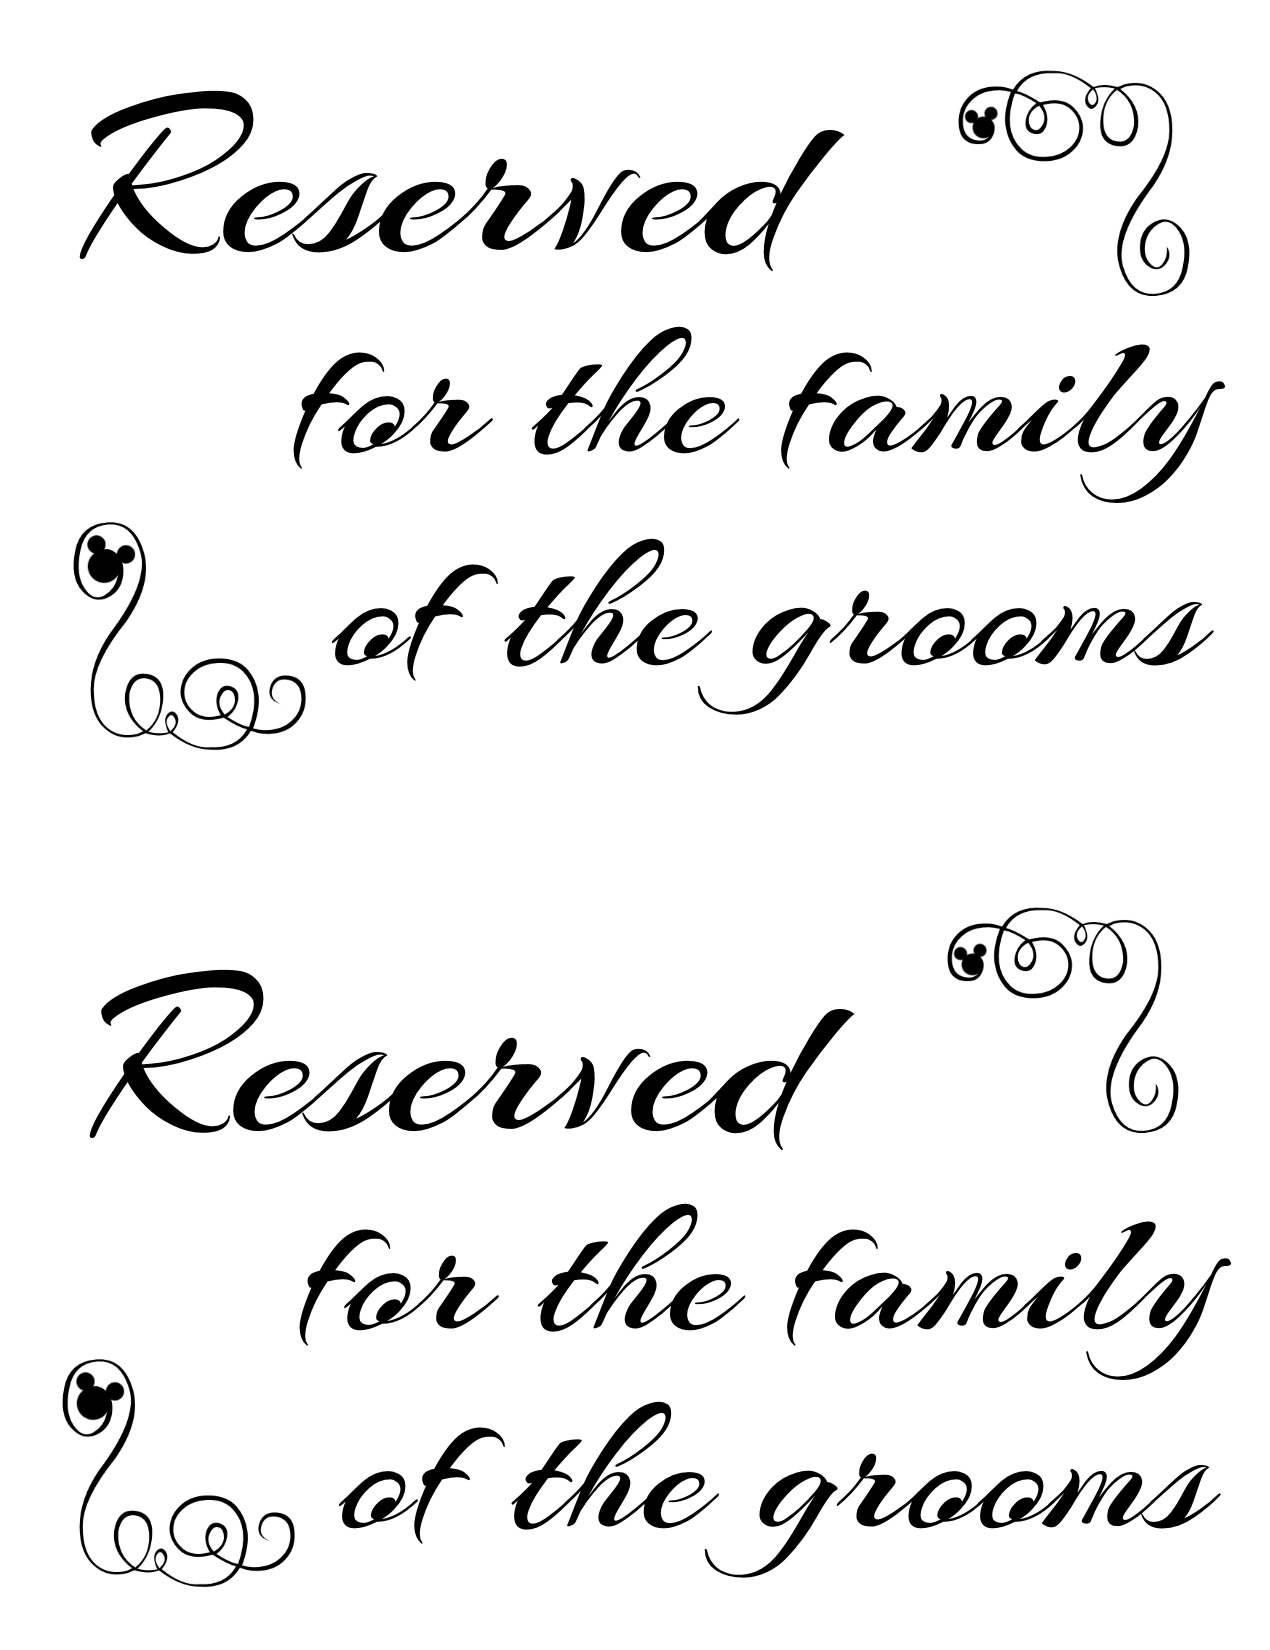 photo relating to Printable Reserved Signs called Totally free Printable Reserved Seating Signs and symptoms for Your Wedding ceremony Rite